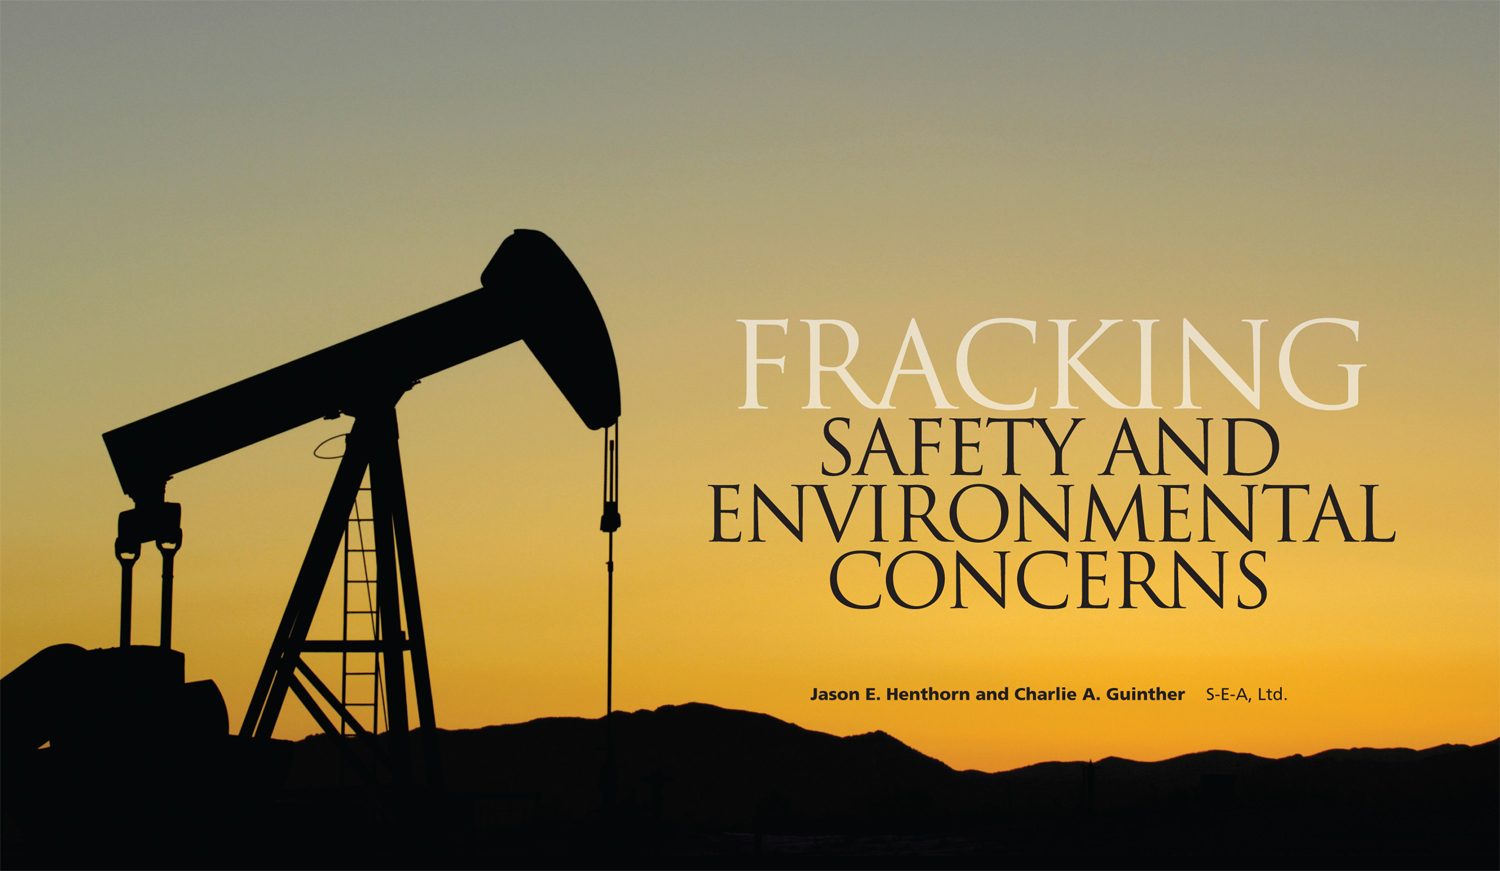 S-E-A Industrial Hygienists Discuss Fracking in Newly Published Article